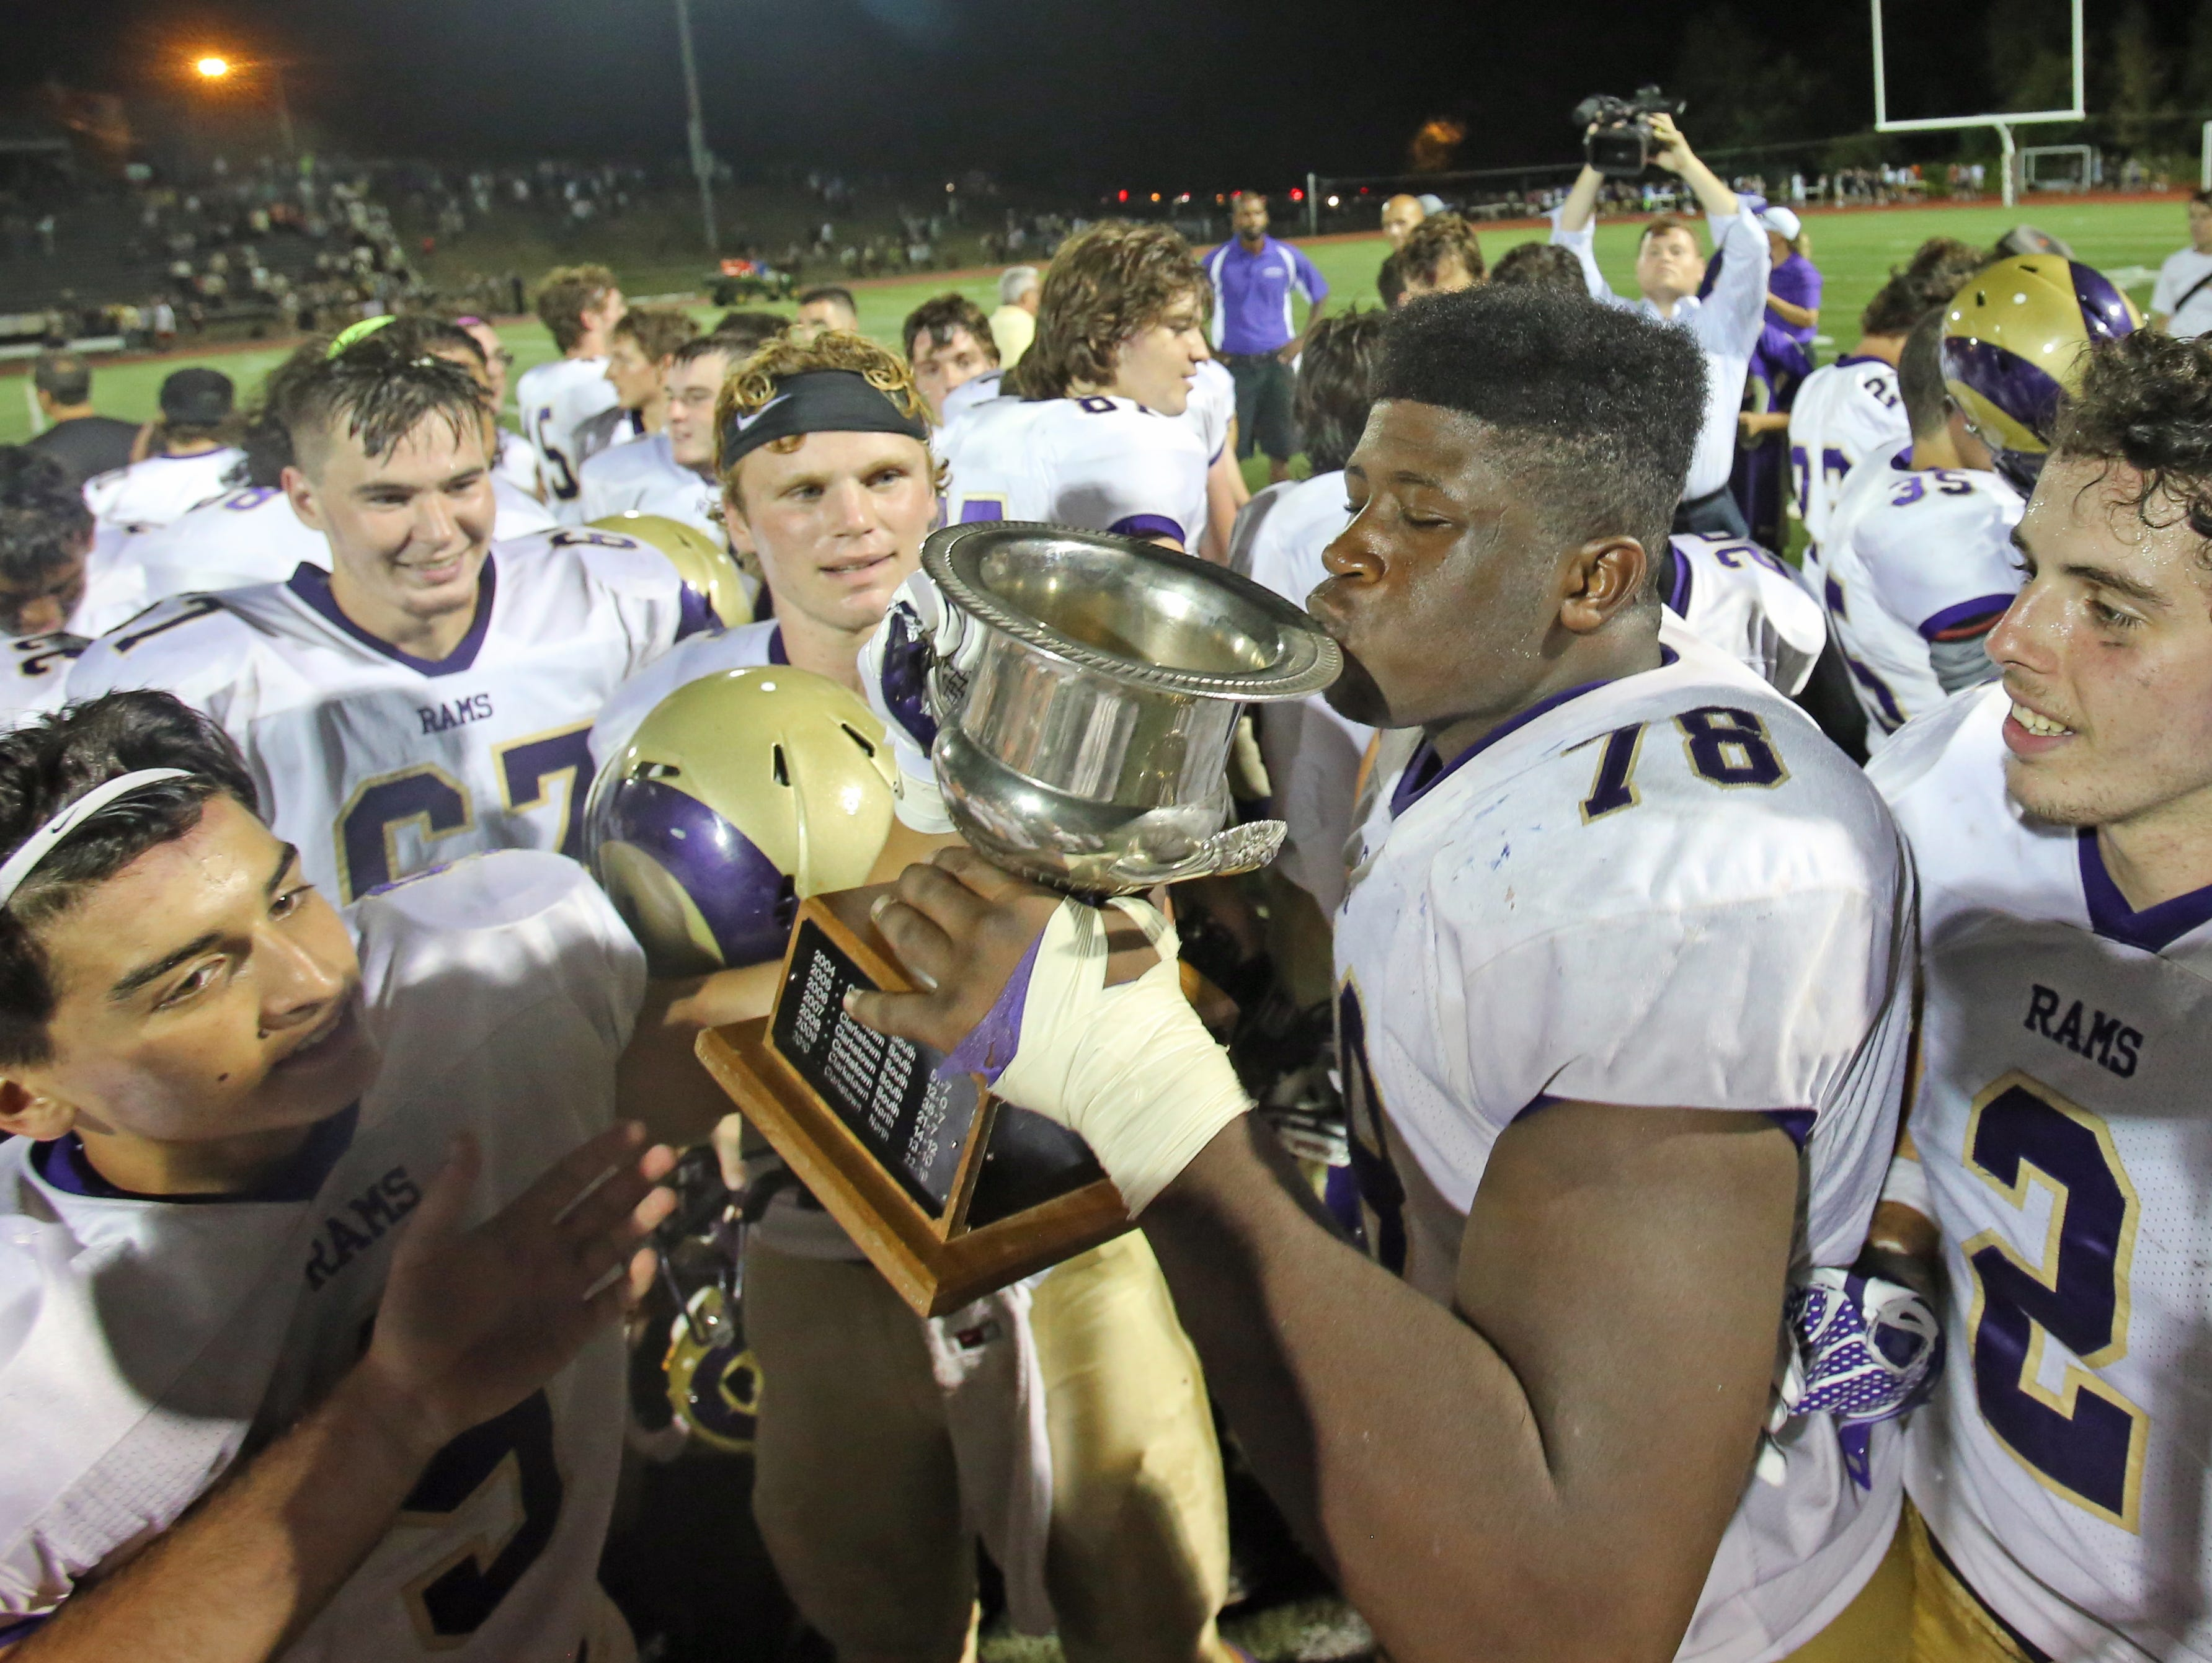 Clarkstown North celebrates their 26-8 win over Clarkstown South and winning Supervisor's Cup at Clarktown South High School in West Nyack Sept. 4, 2015.